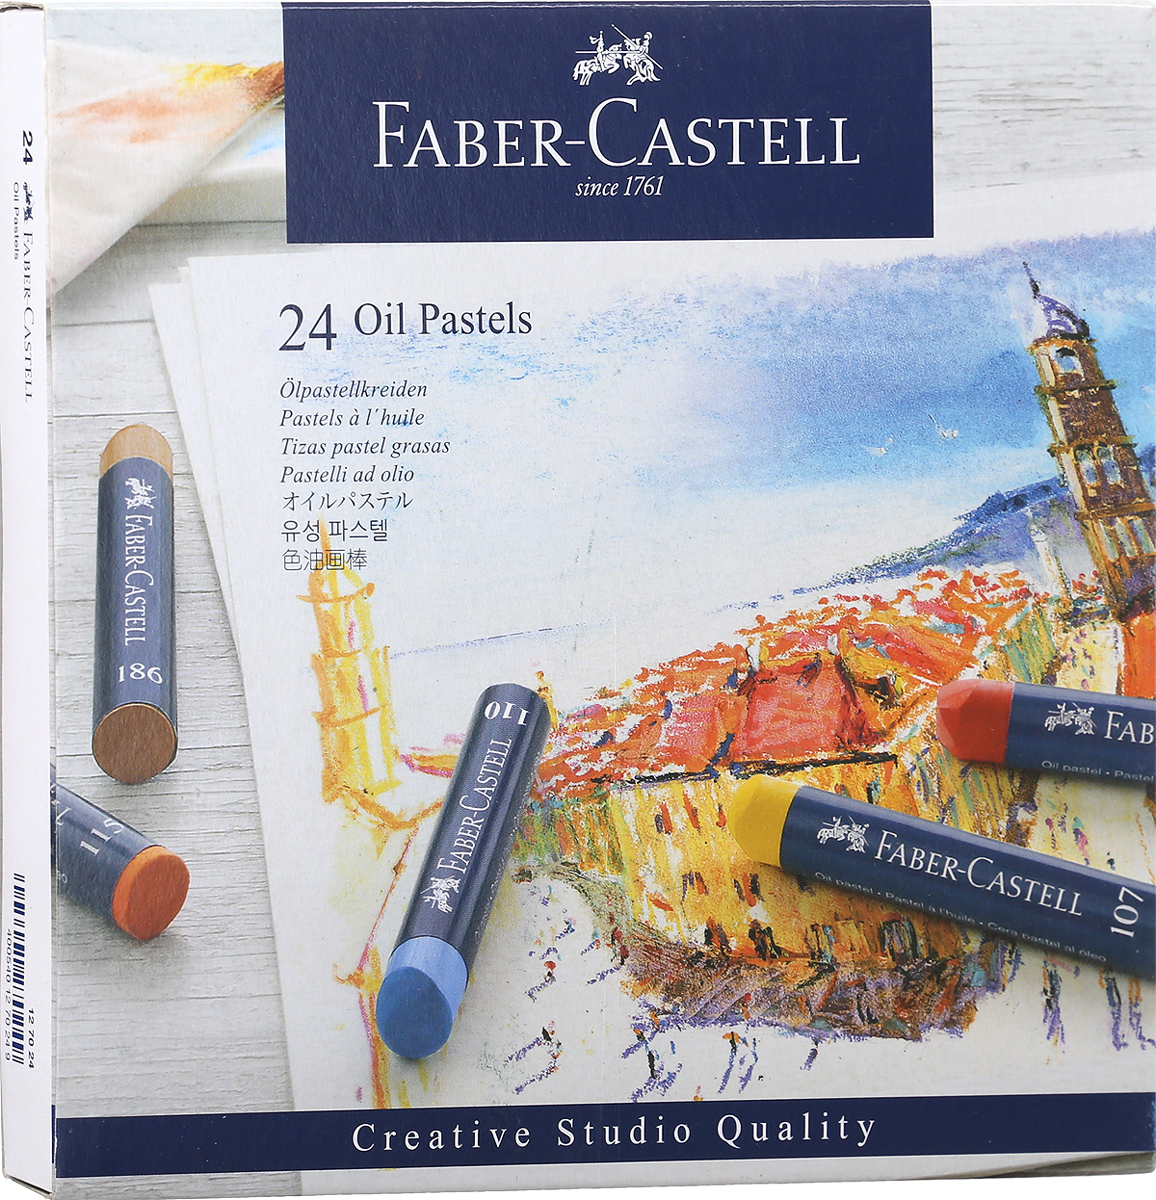 Faber-Castell Масляная пастель Studio Quality Oil Pastels 24 шт цена и фото